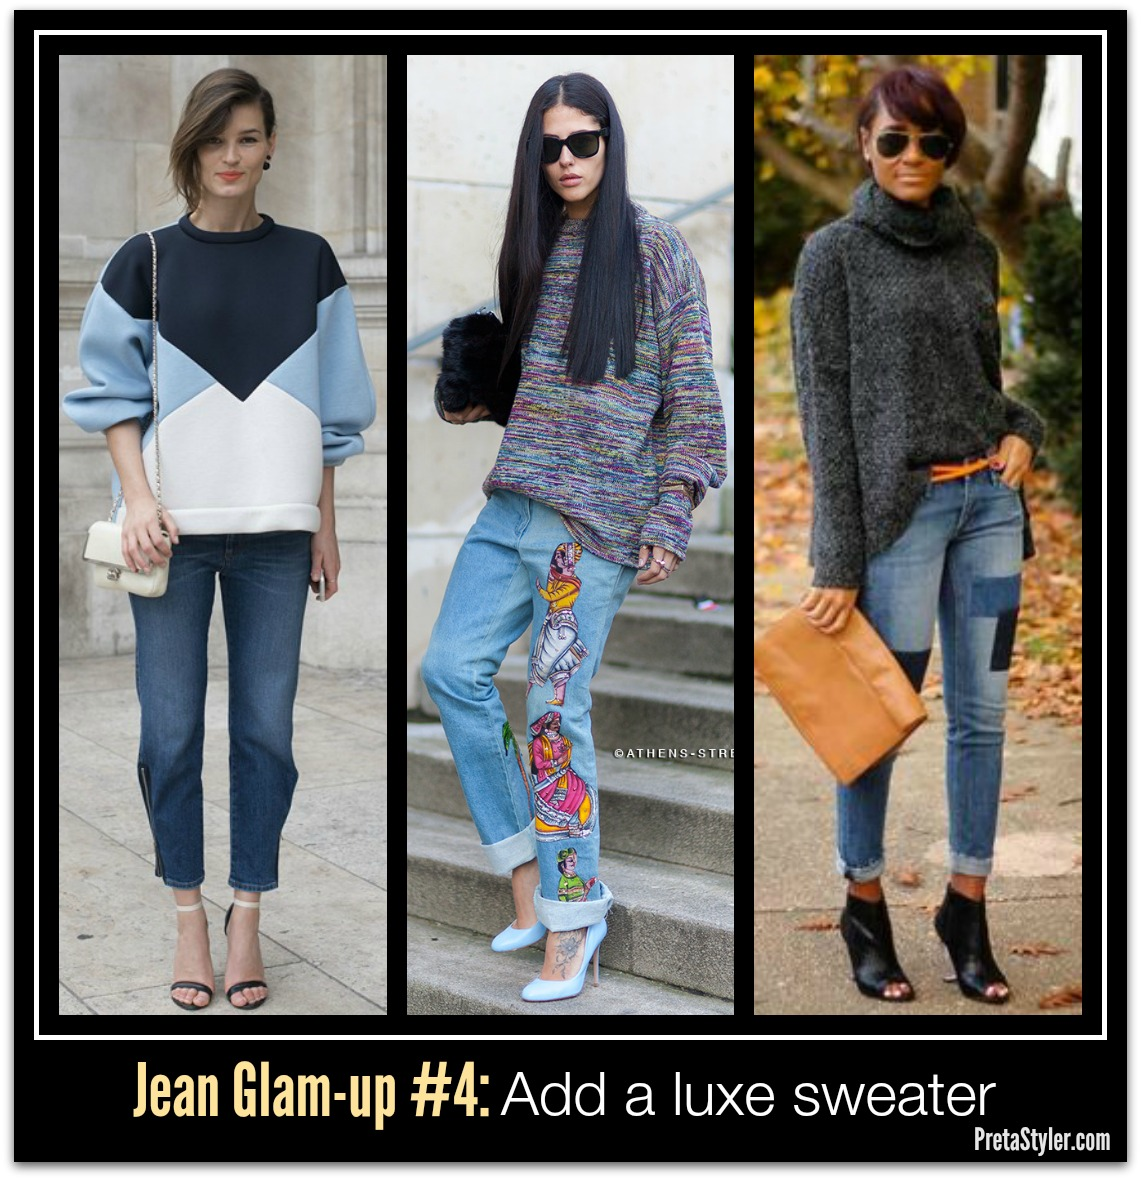 How to Glam-up Blue Jeans #4